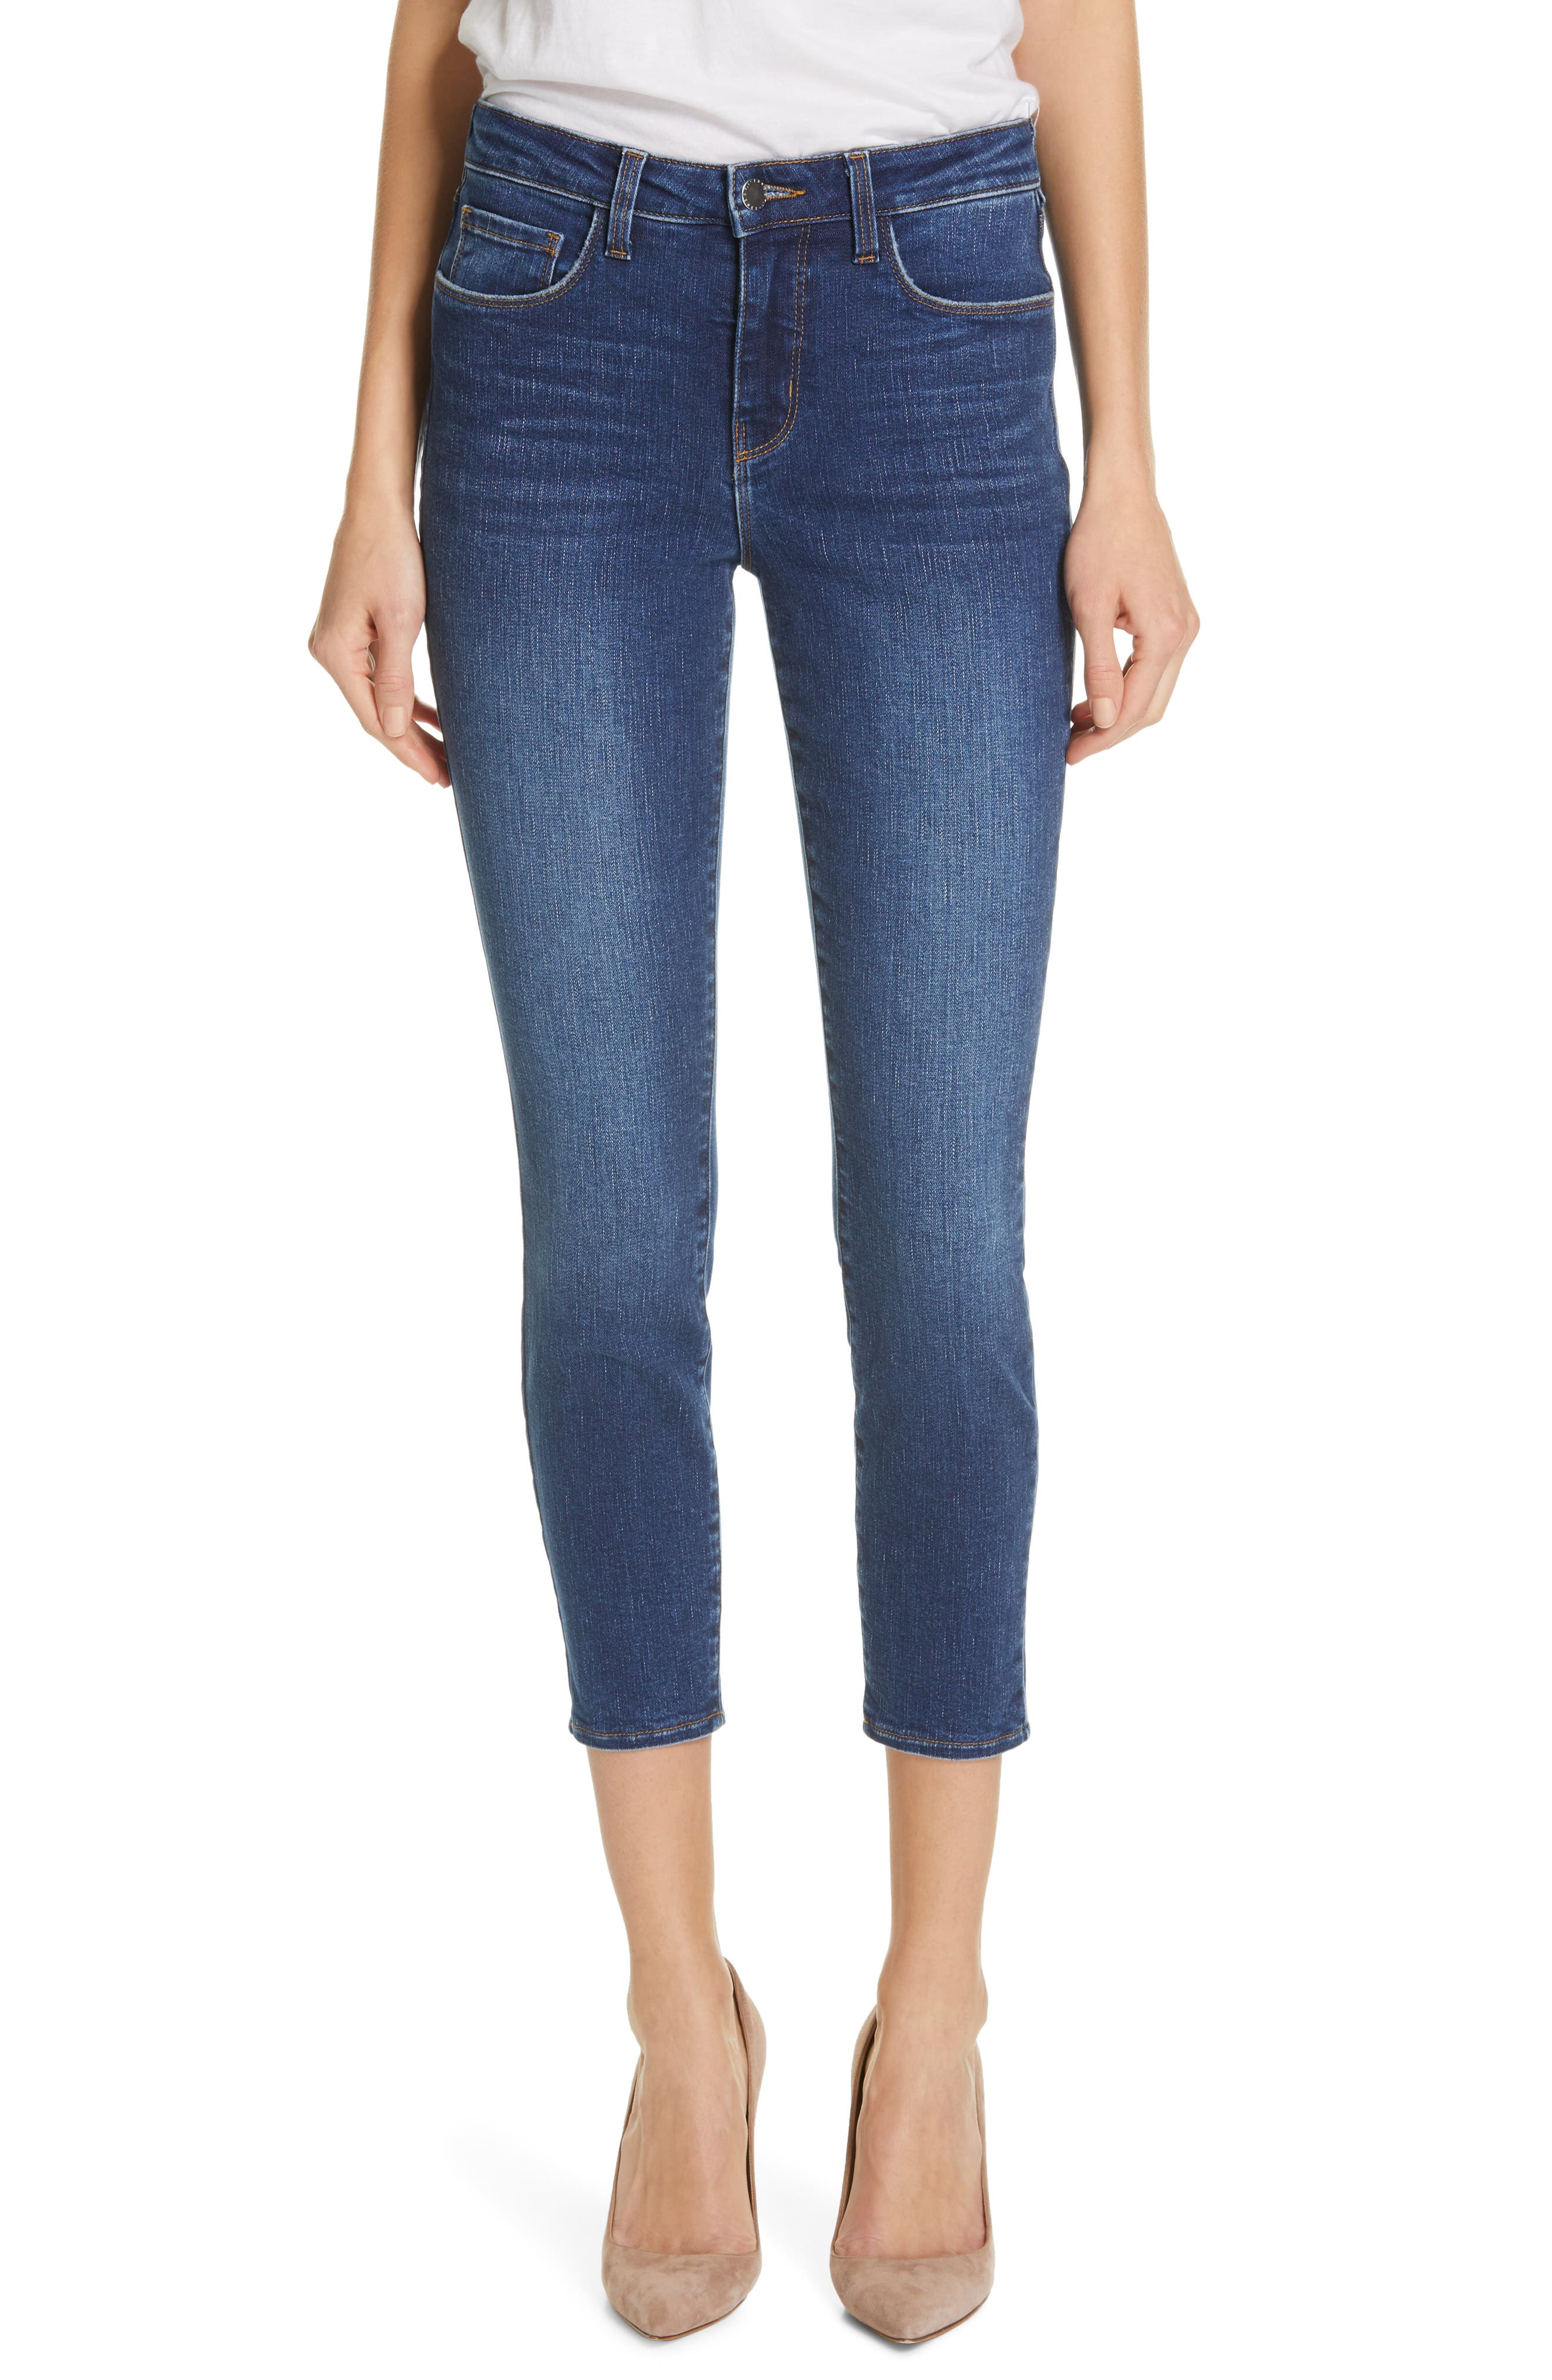 L'AGENCE Margot Crop Skinny Jeans, Main, color, TUSCAN